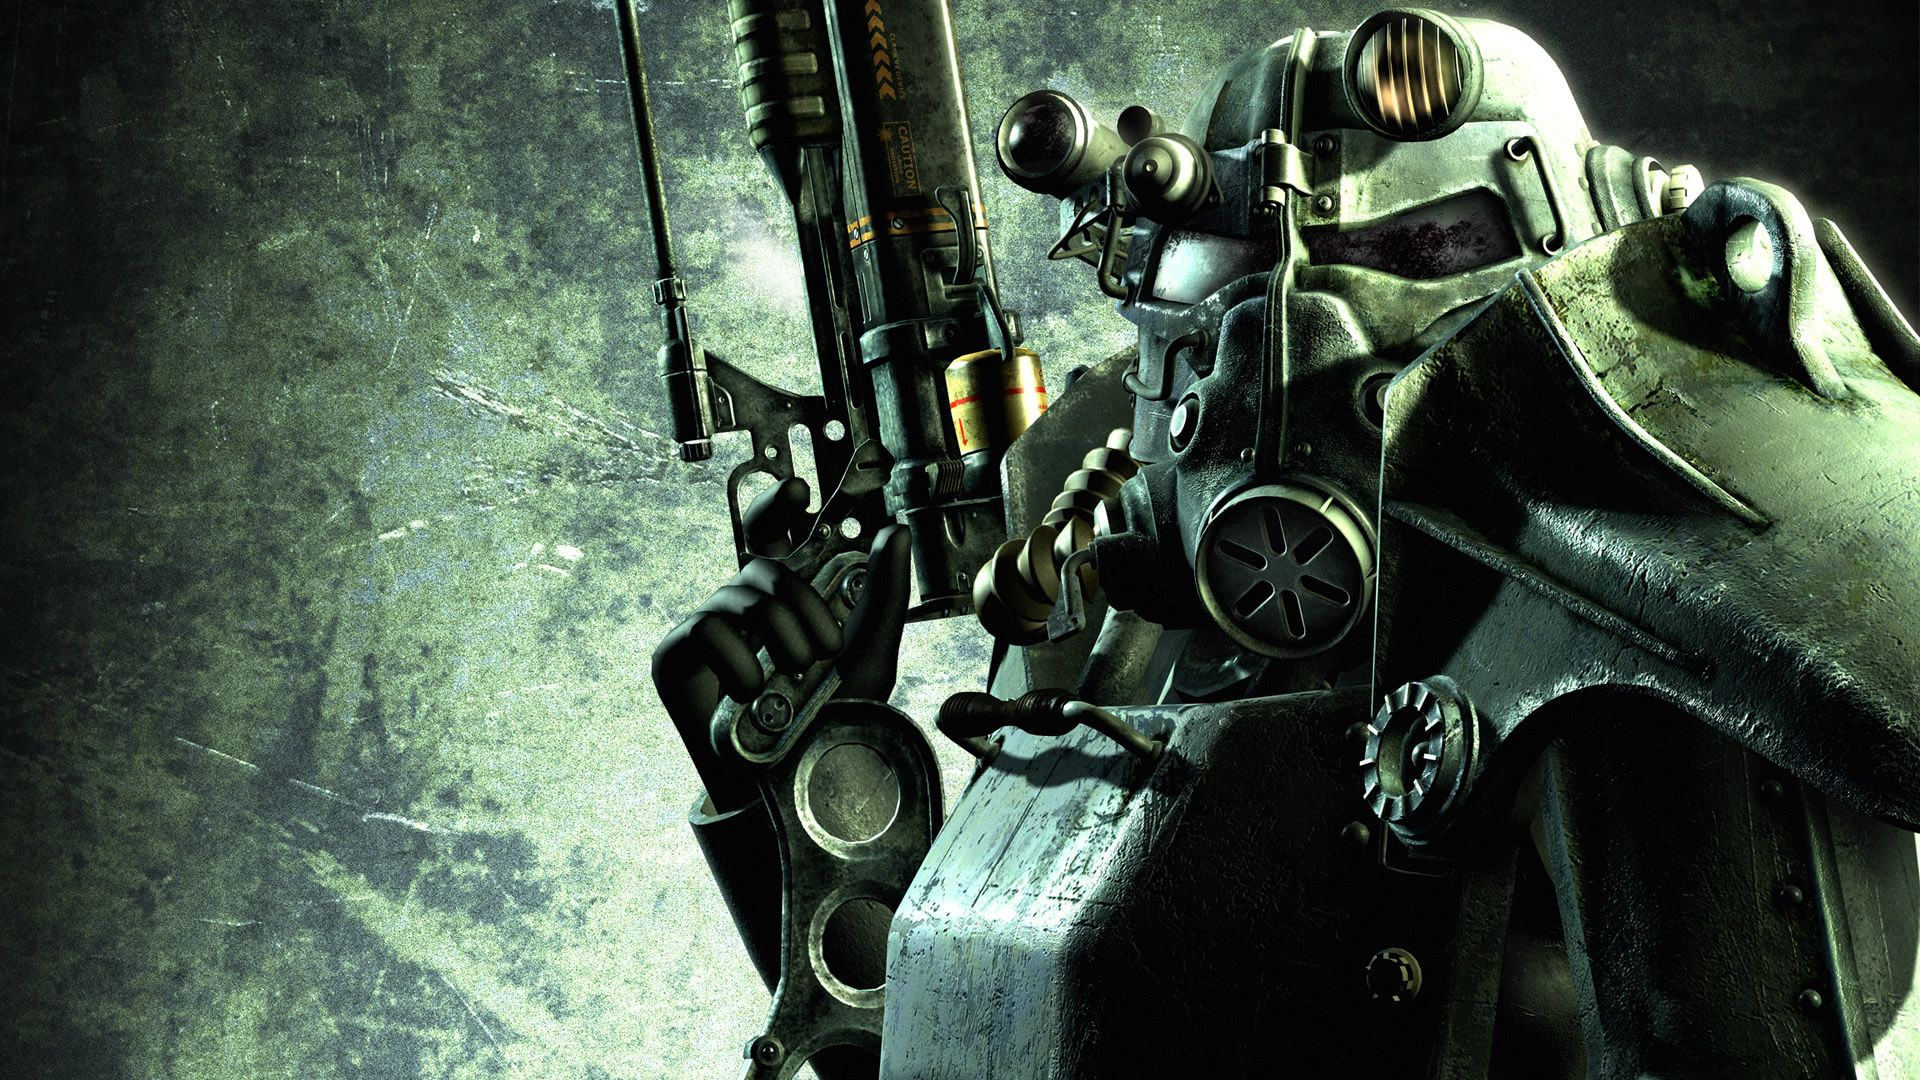 Fallout 3 Power Armour The Used By Brotherhood Of Steel Was Once US Army As Mechanized Infantry Before Bombs Fell